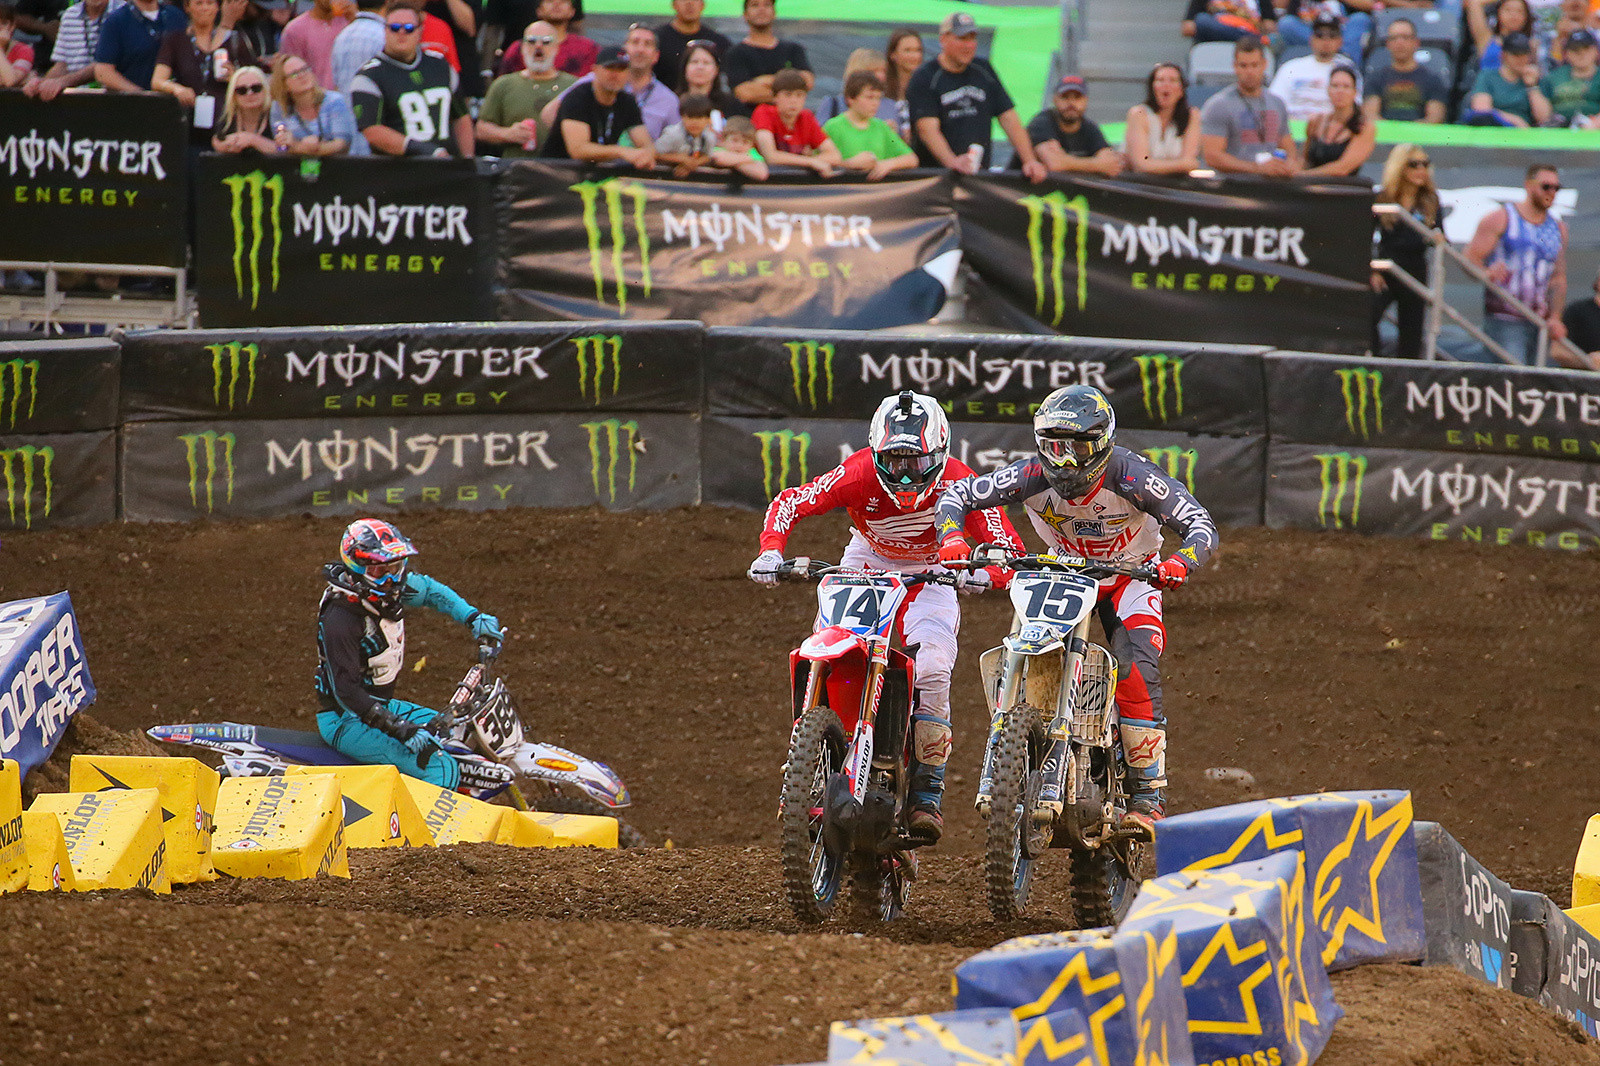 One of the best battles during the prelims was this Semi between Cole Seely (Team Honda HRC) and Dean Wilson (Rockstar Energy Racing Husqvarna). They traded the lead and went bar-to-bar for a bit, with Cole coming out on top. Unfortunately, he reinjured the adductor muscle that had kept him out of the previous couple of rounds, so his attendance in Vegas is questionable. Dean went on to finish tenth in the main.